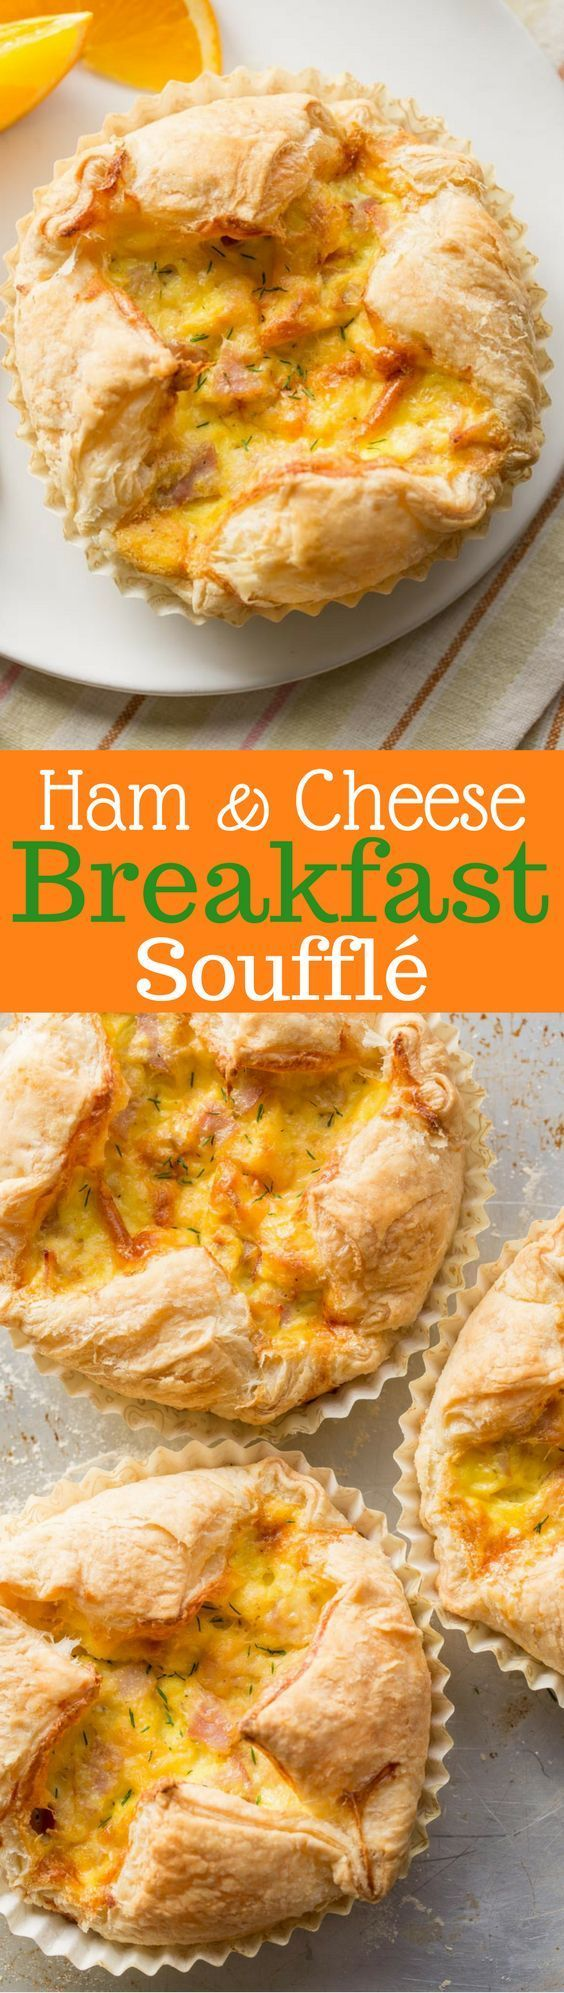 Ham & Cheese Breakfast Souffl� - an easy and delicious souffl� loaded with smoked Gouda, diced ham, eggs and salty Parmesan cheese all wrapped up in a puff pastry shell. www.savingdessert.com